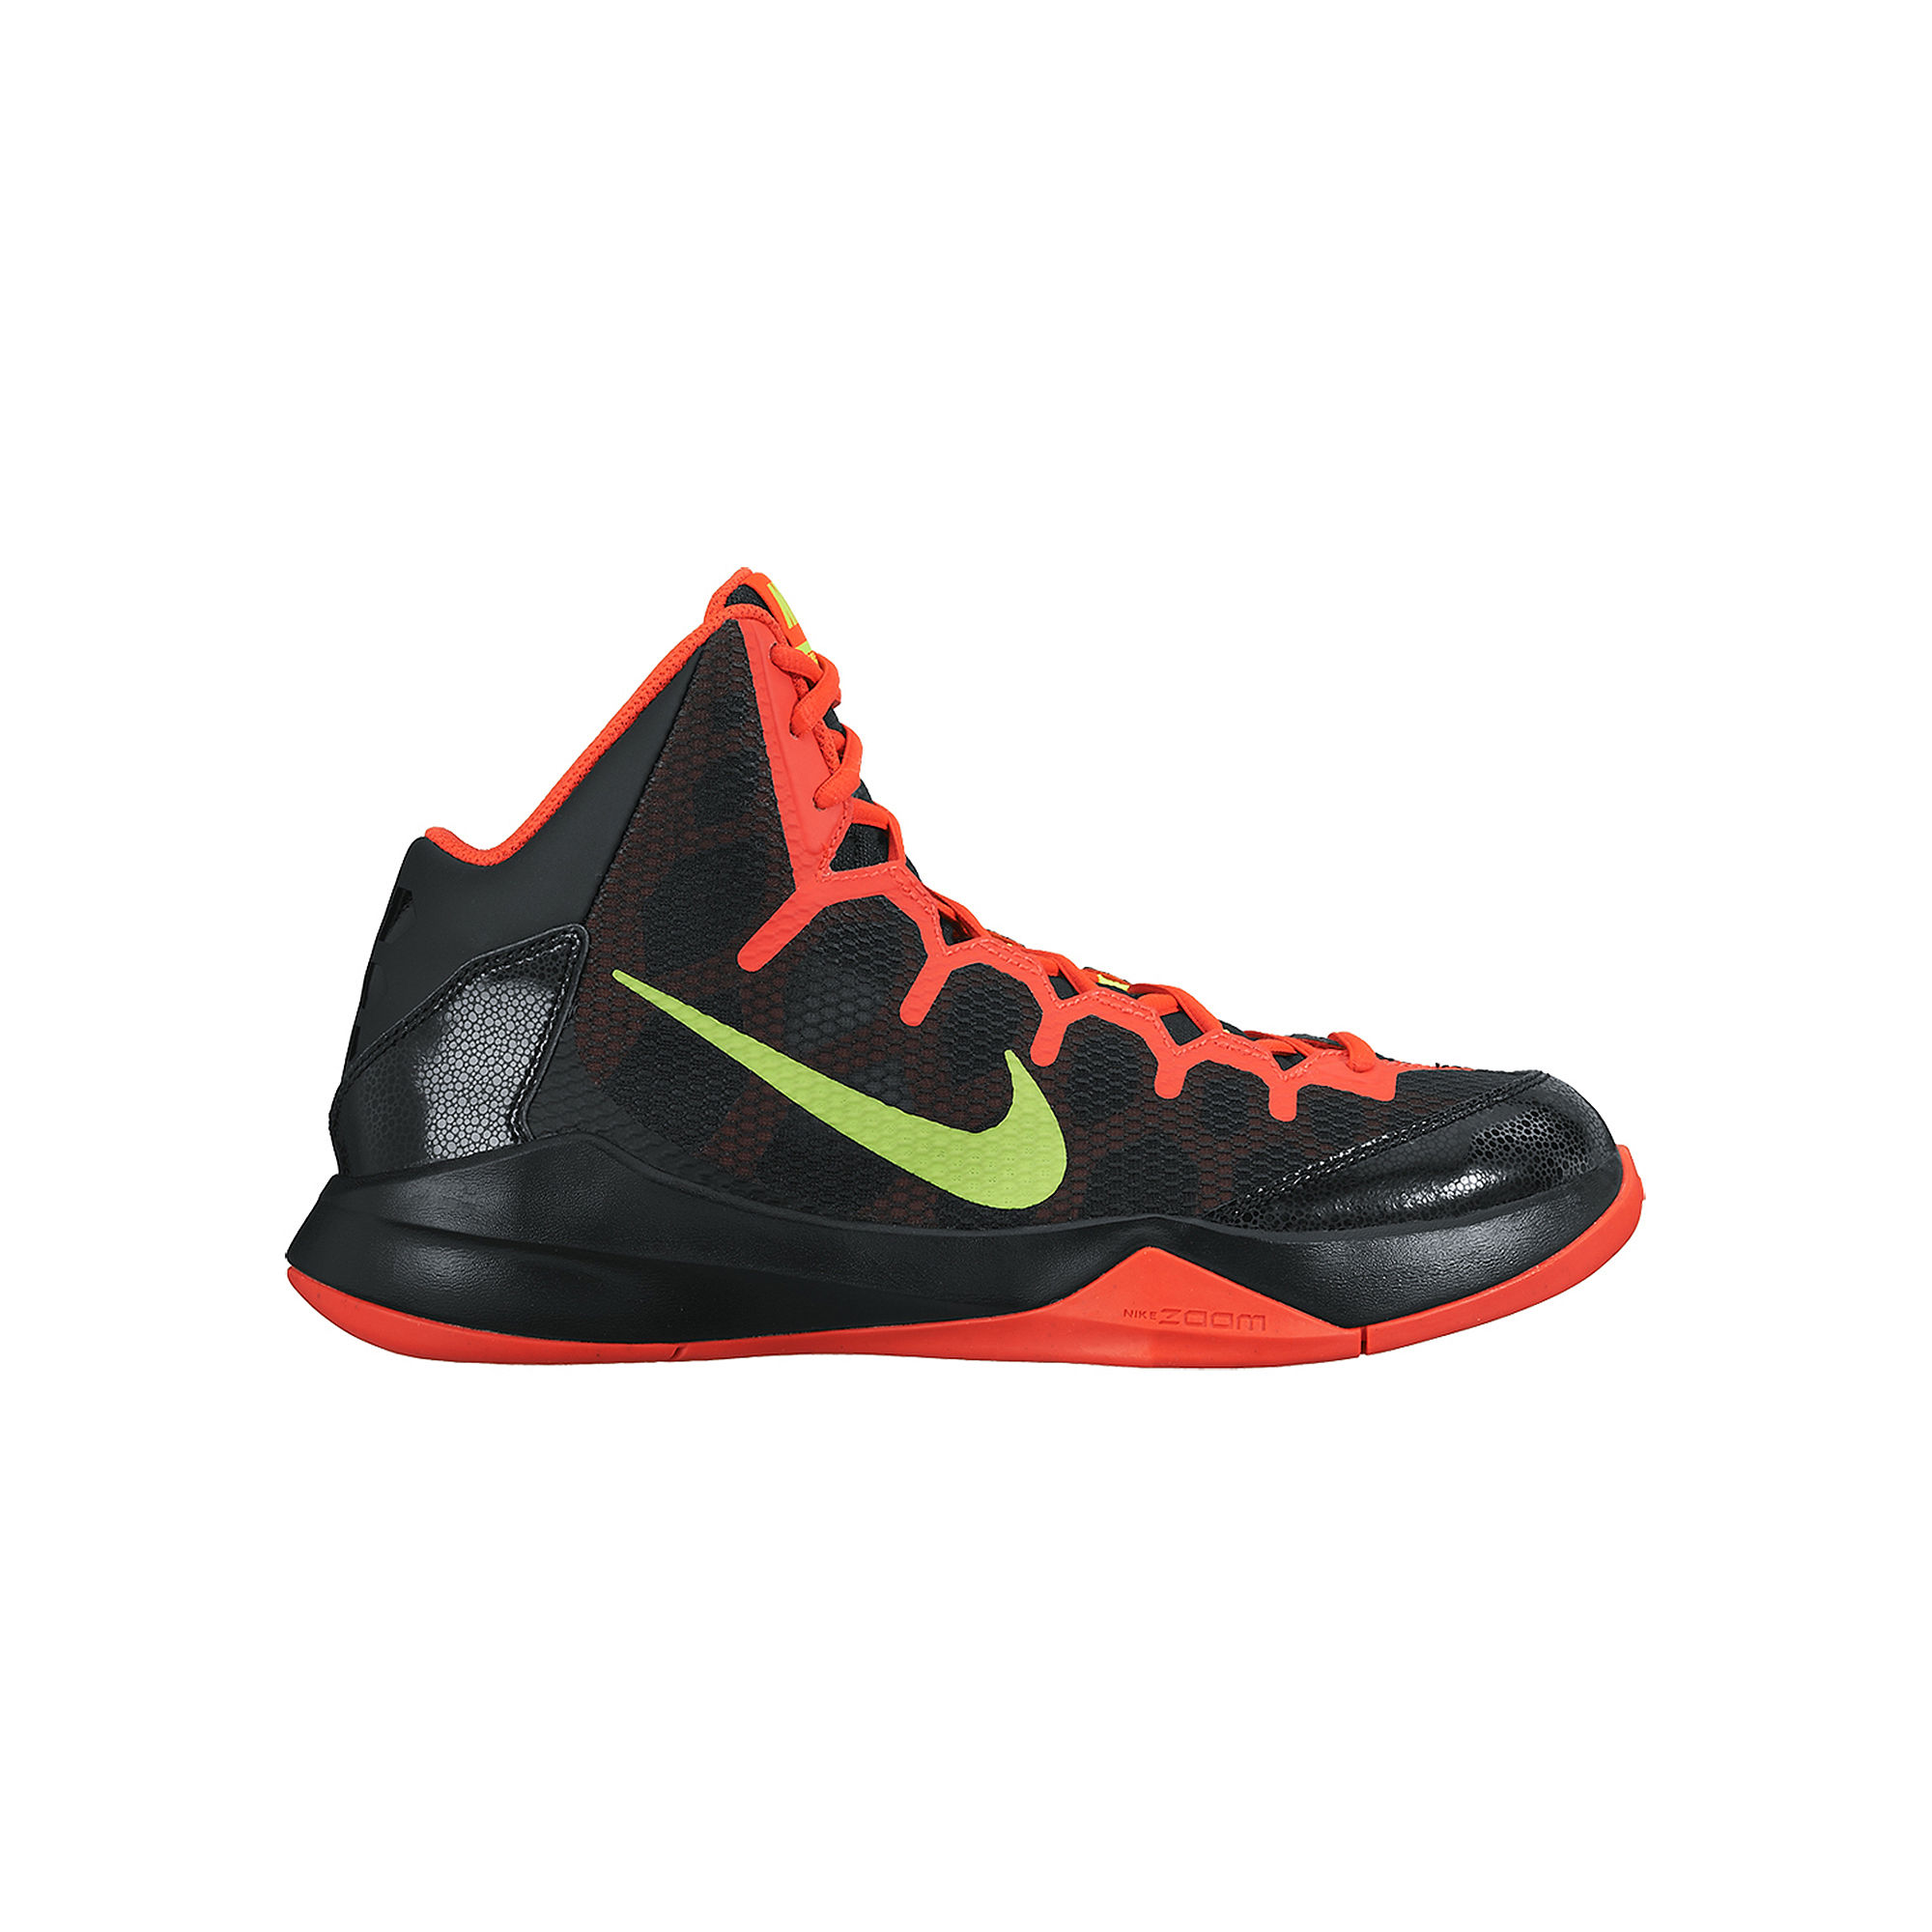 93886c04cef9 ... UPC 888409766969 product image for Nike Zoom Without a Doubt Mens  Basketball Shoes